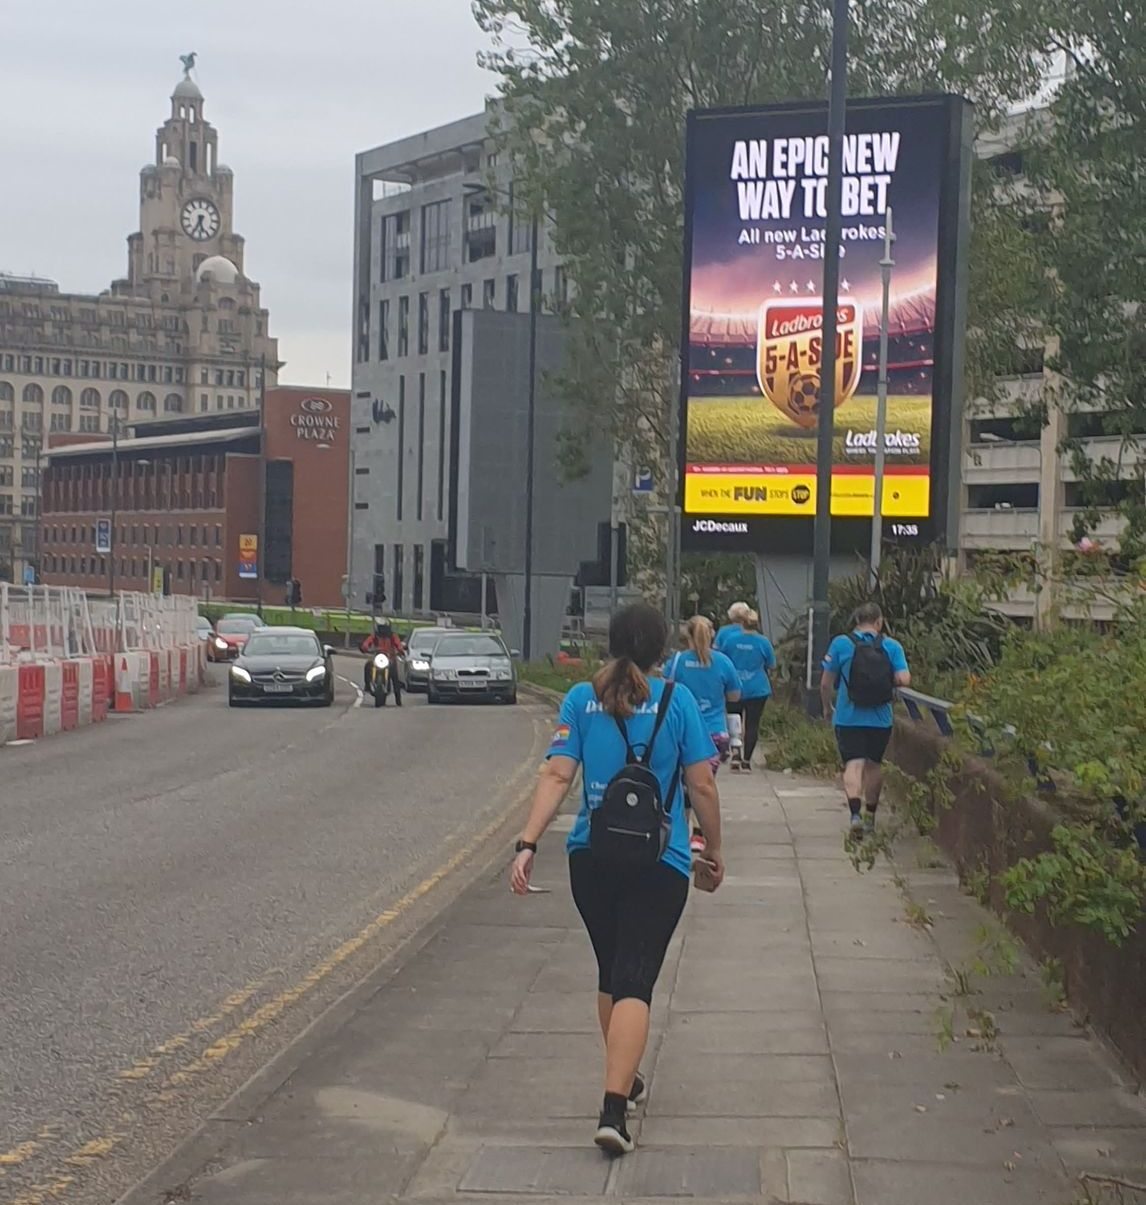 NHS staff from Southport Hospital walked from Southport to Liverpool on Wednesday 17 September, 2020 to raise money for a new minibus for patients at the North West Regional Spinal Injuries Centre in Southport